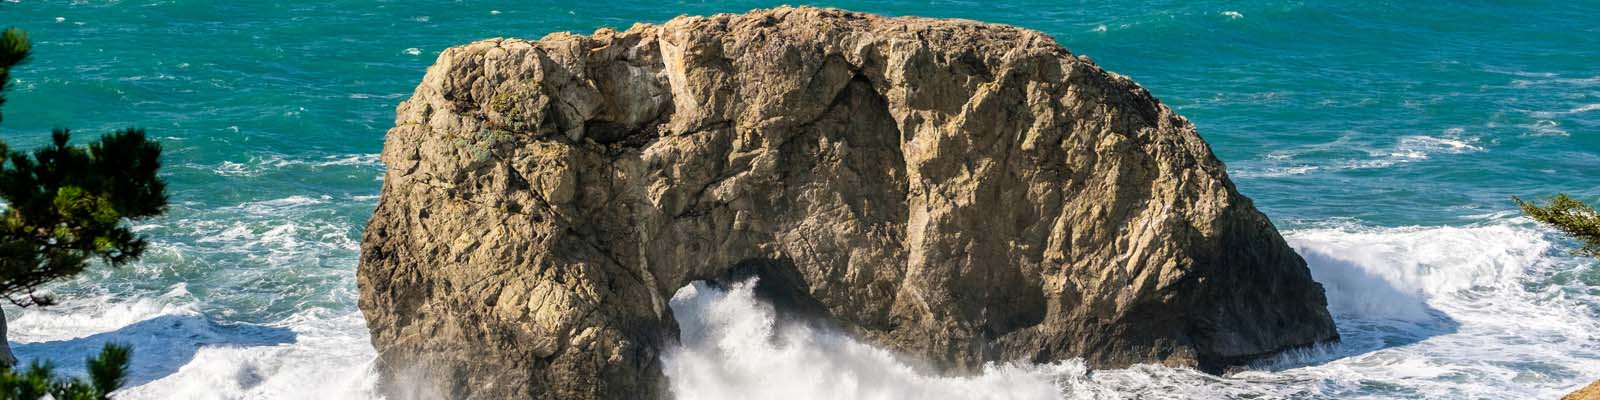 Pictured: Large rock in the sea with waves in Oregon.